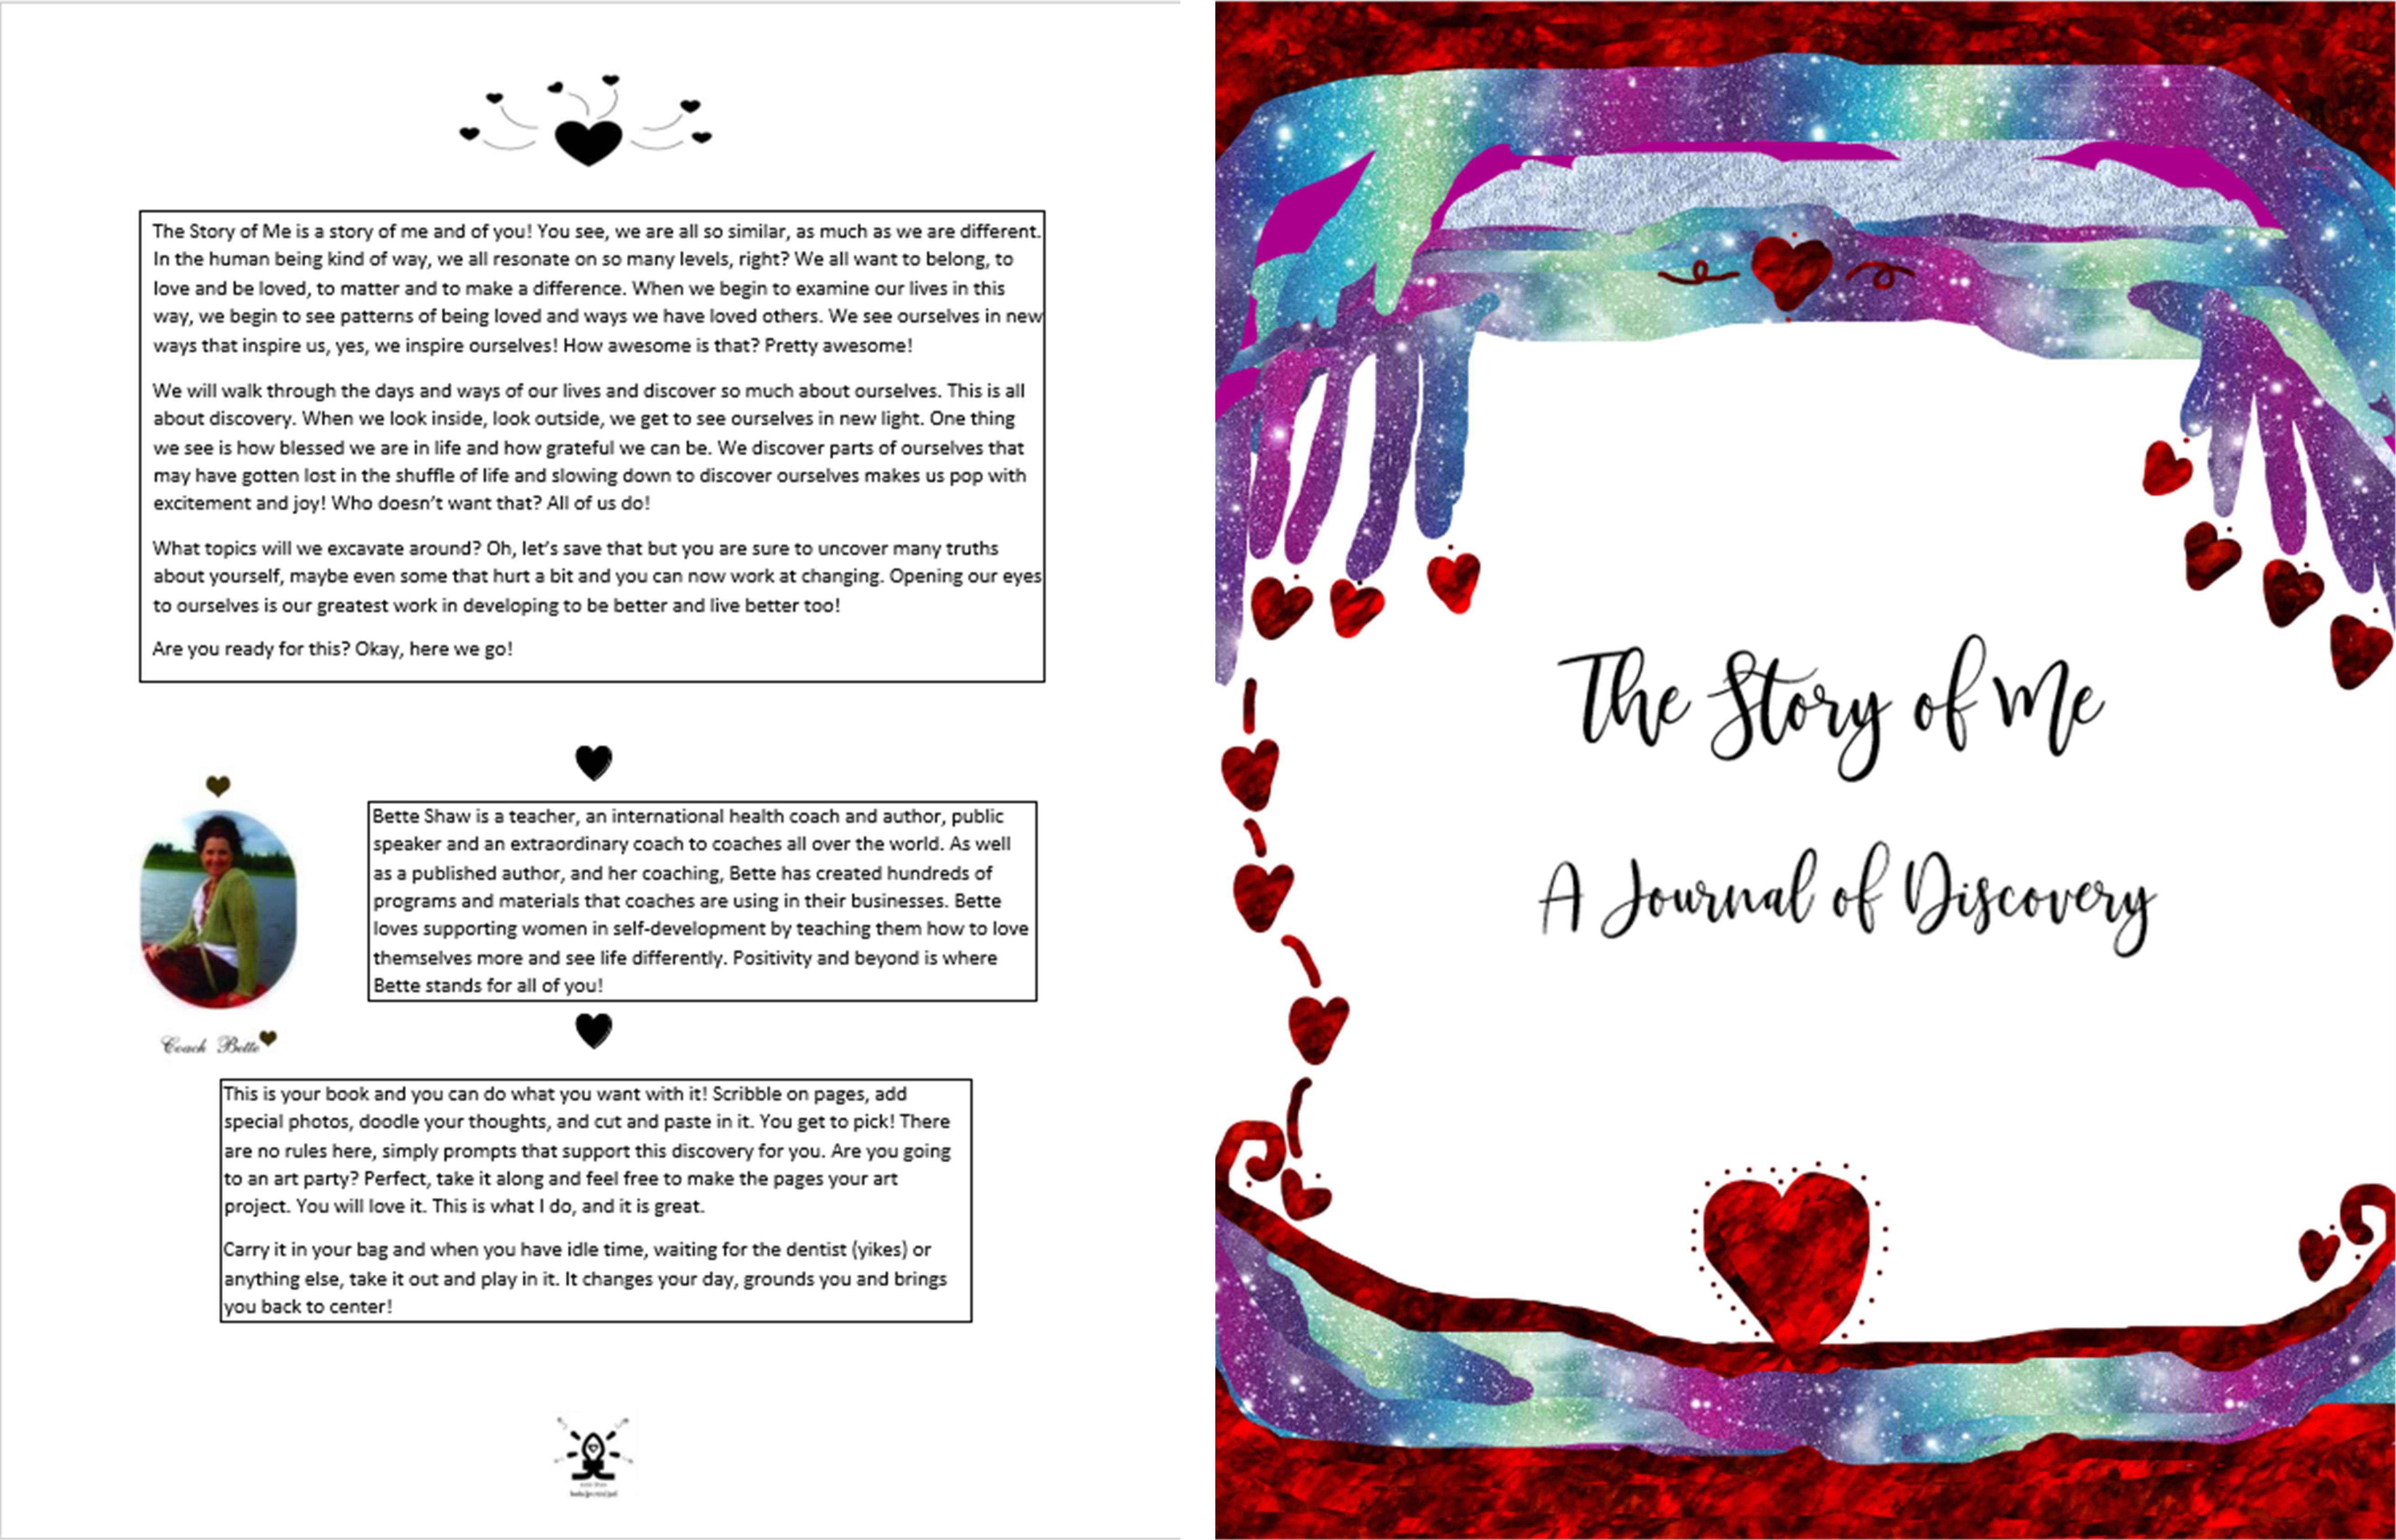 The Story of Me cover image